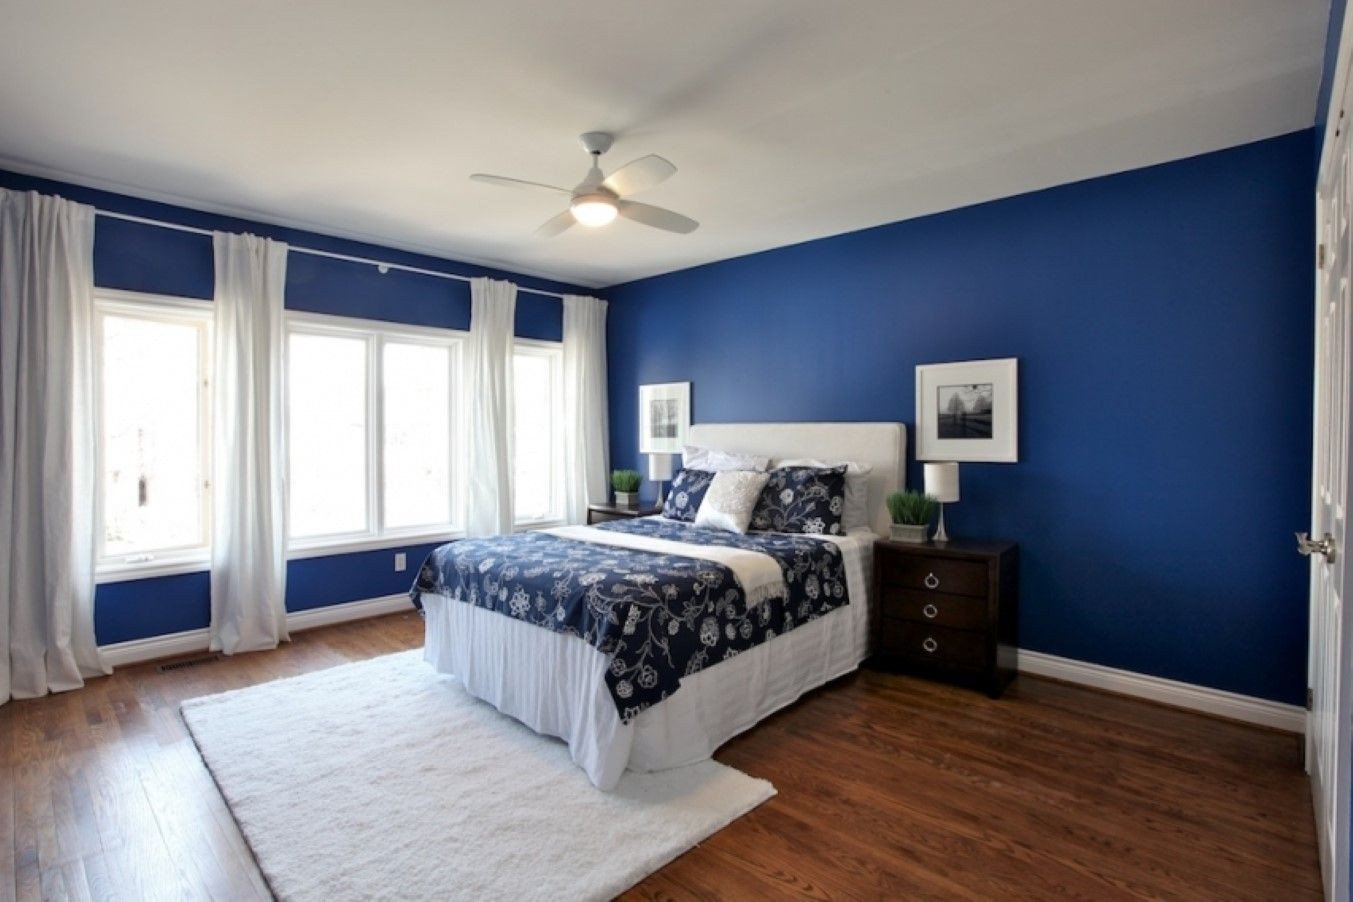 Blue and Gray Bedroom Fresh Image Result for Navy Blue and White Boys Room